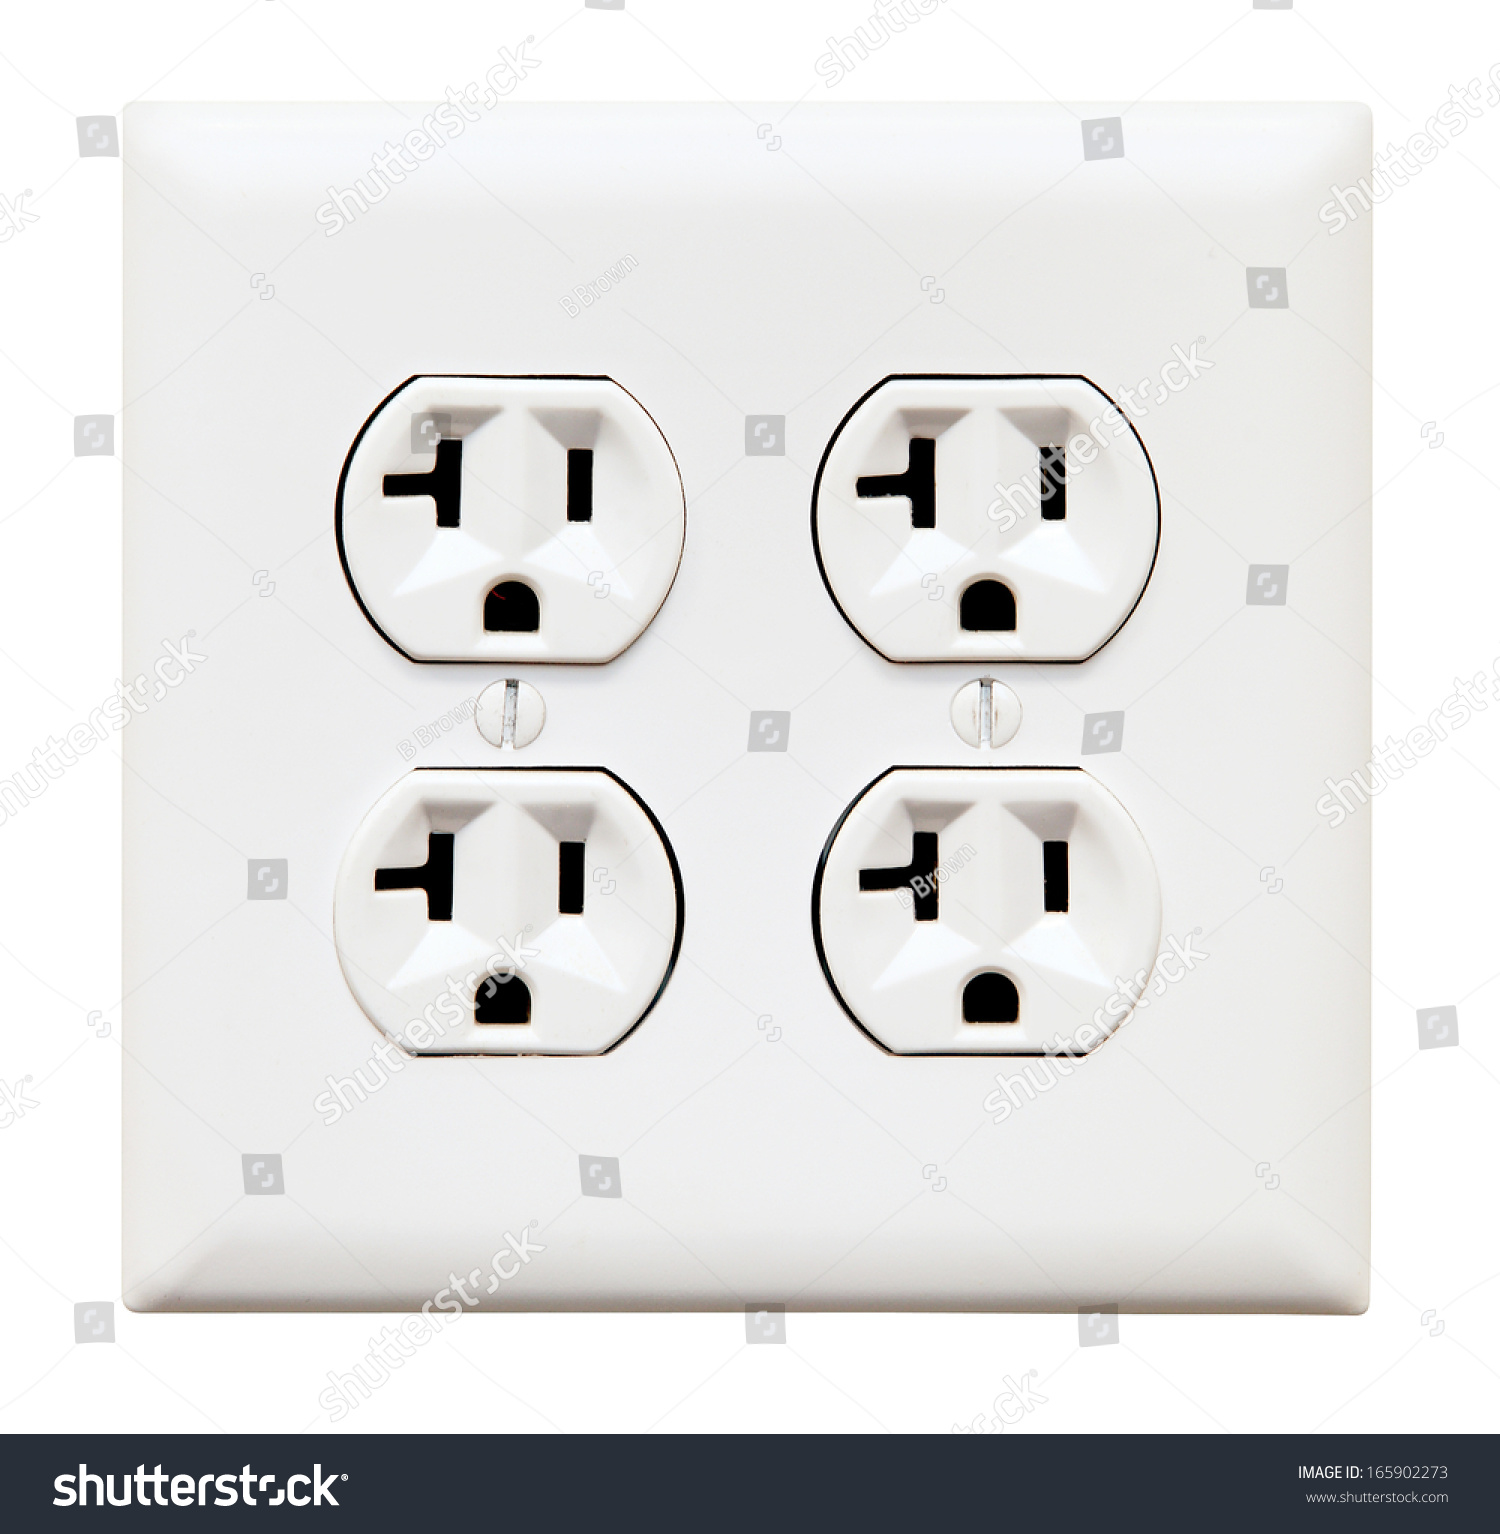 Nice How To Rewire An Electric Guitar Thin Bulldog Security Products Solid Dimarzio Humbucker Wiring Three Way Guitar Switch Old 5 Way Pickup Switch YellowSolar Panel Wiring 4 Plex Electrical Outlet 110 Volts Stock Photo 165902273 ..